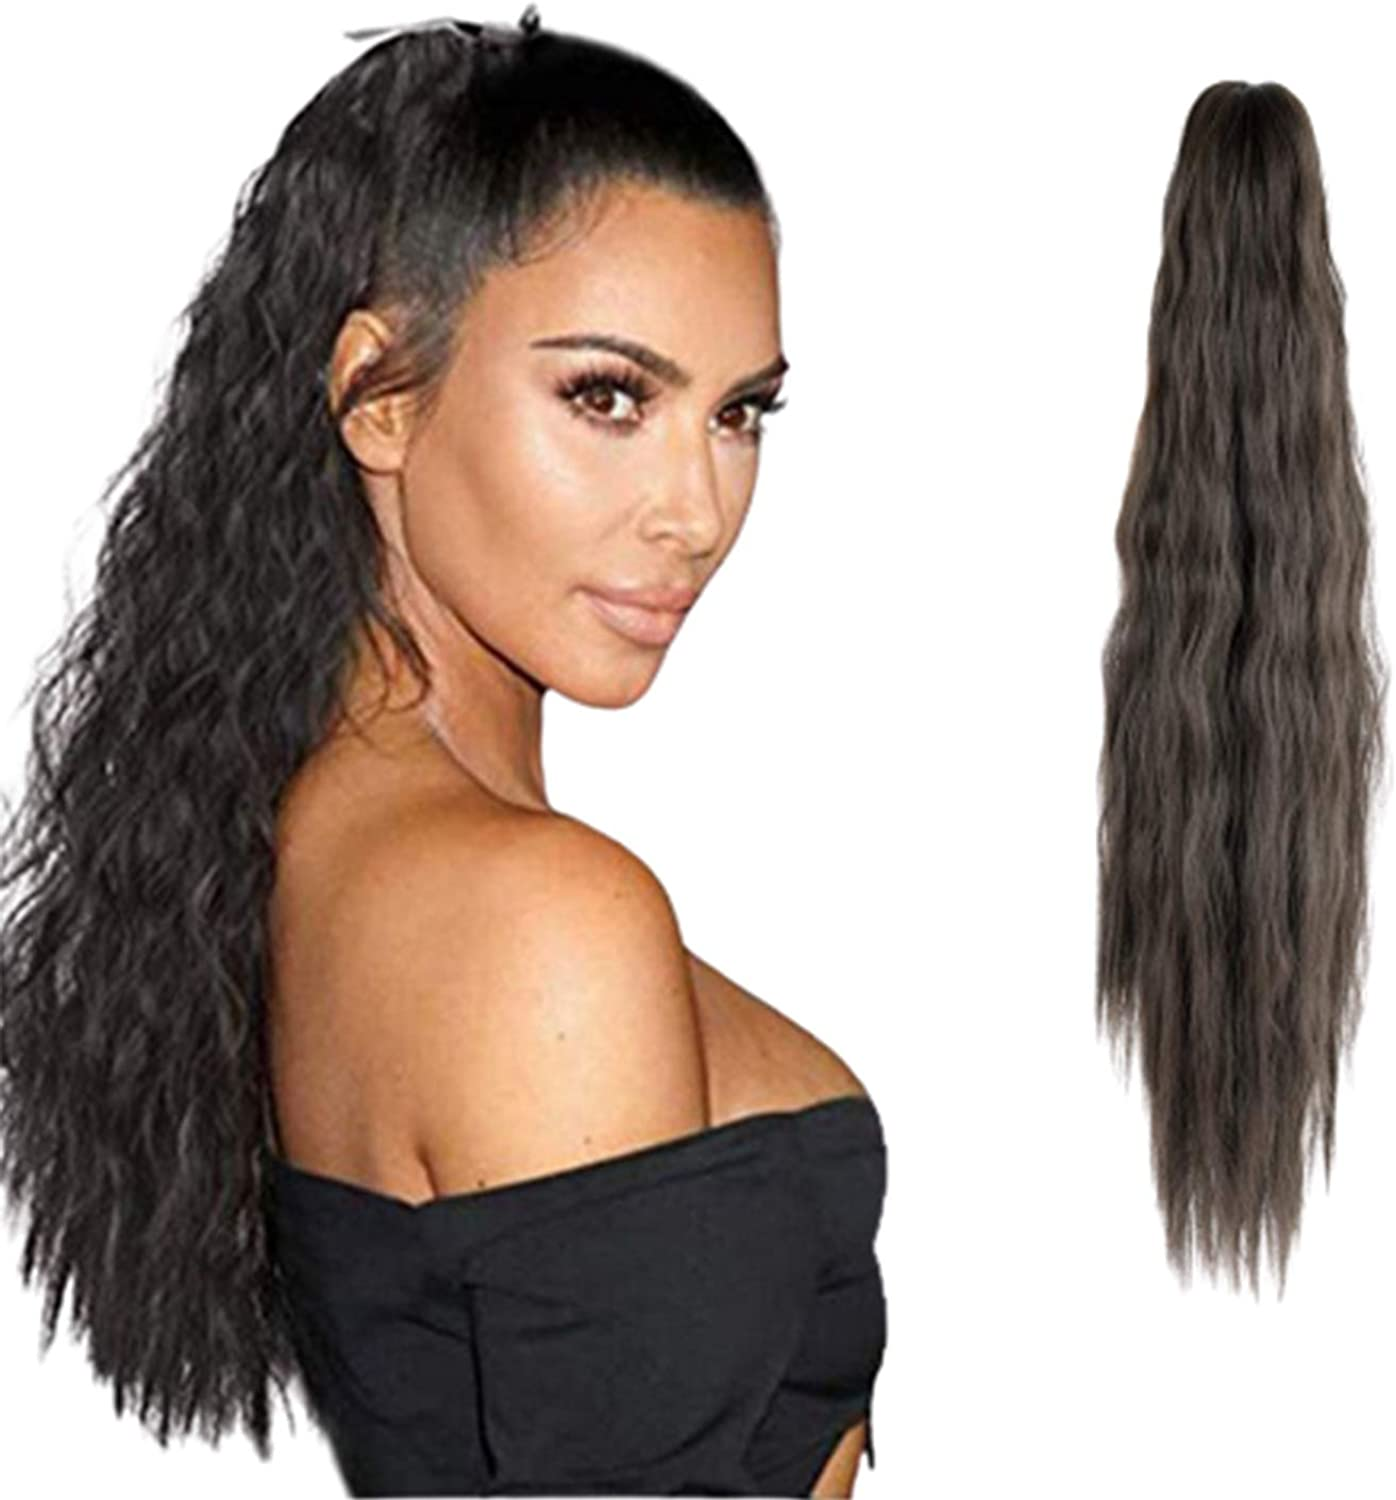 FUT Womens Claw Ponytail Clip in Long inches Extensions Rapid rise store 21 Hair